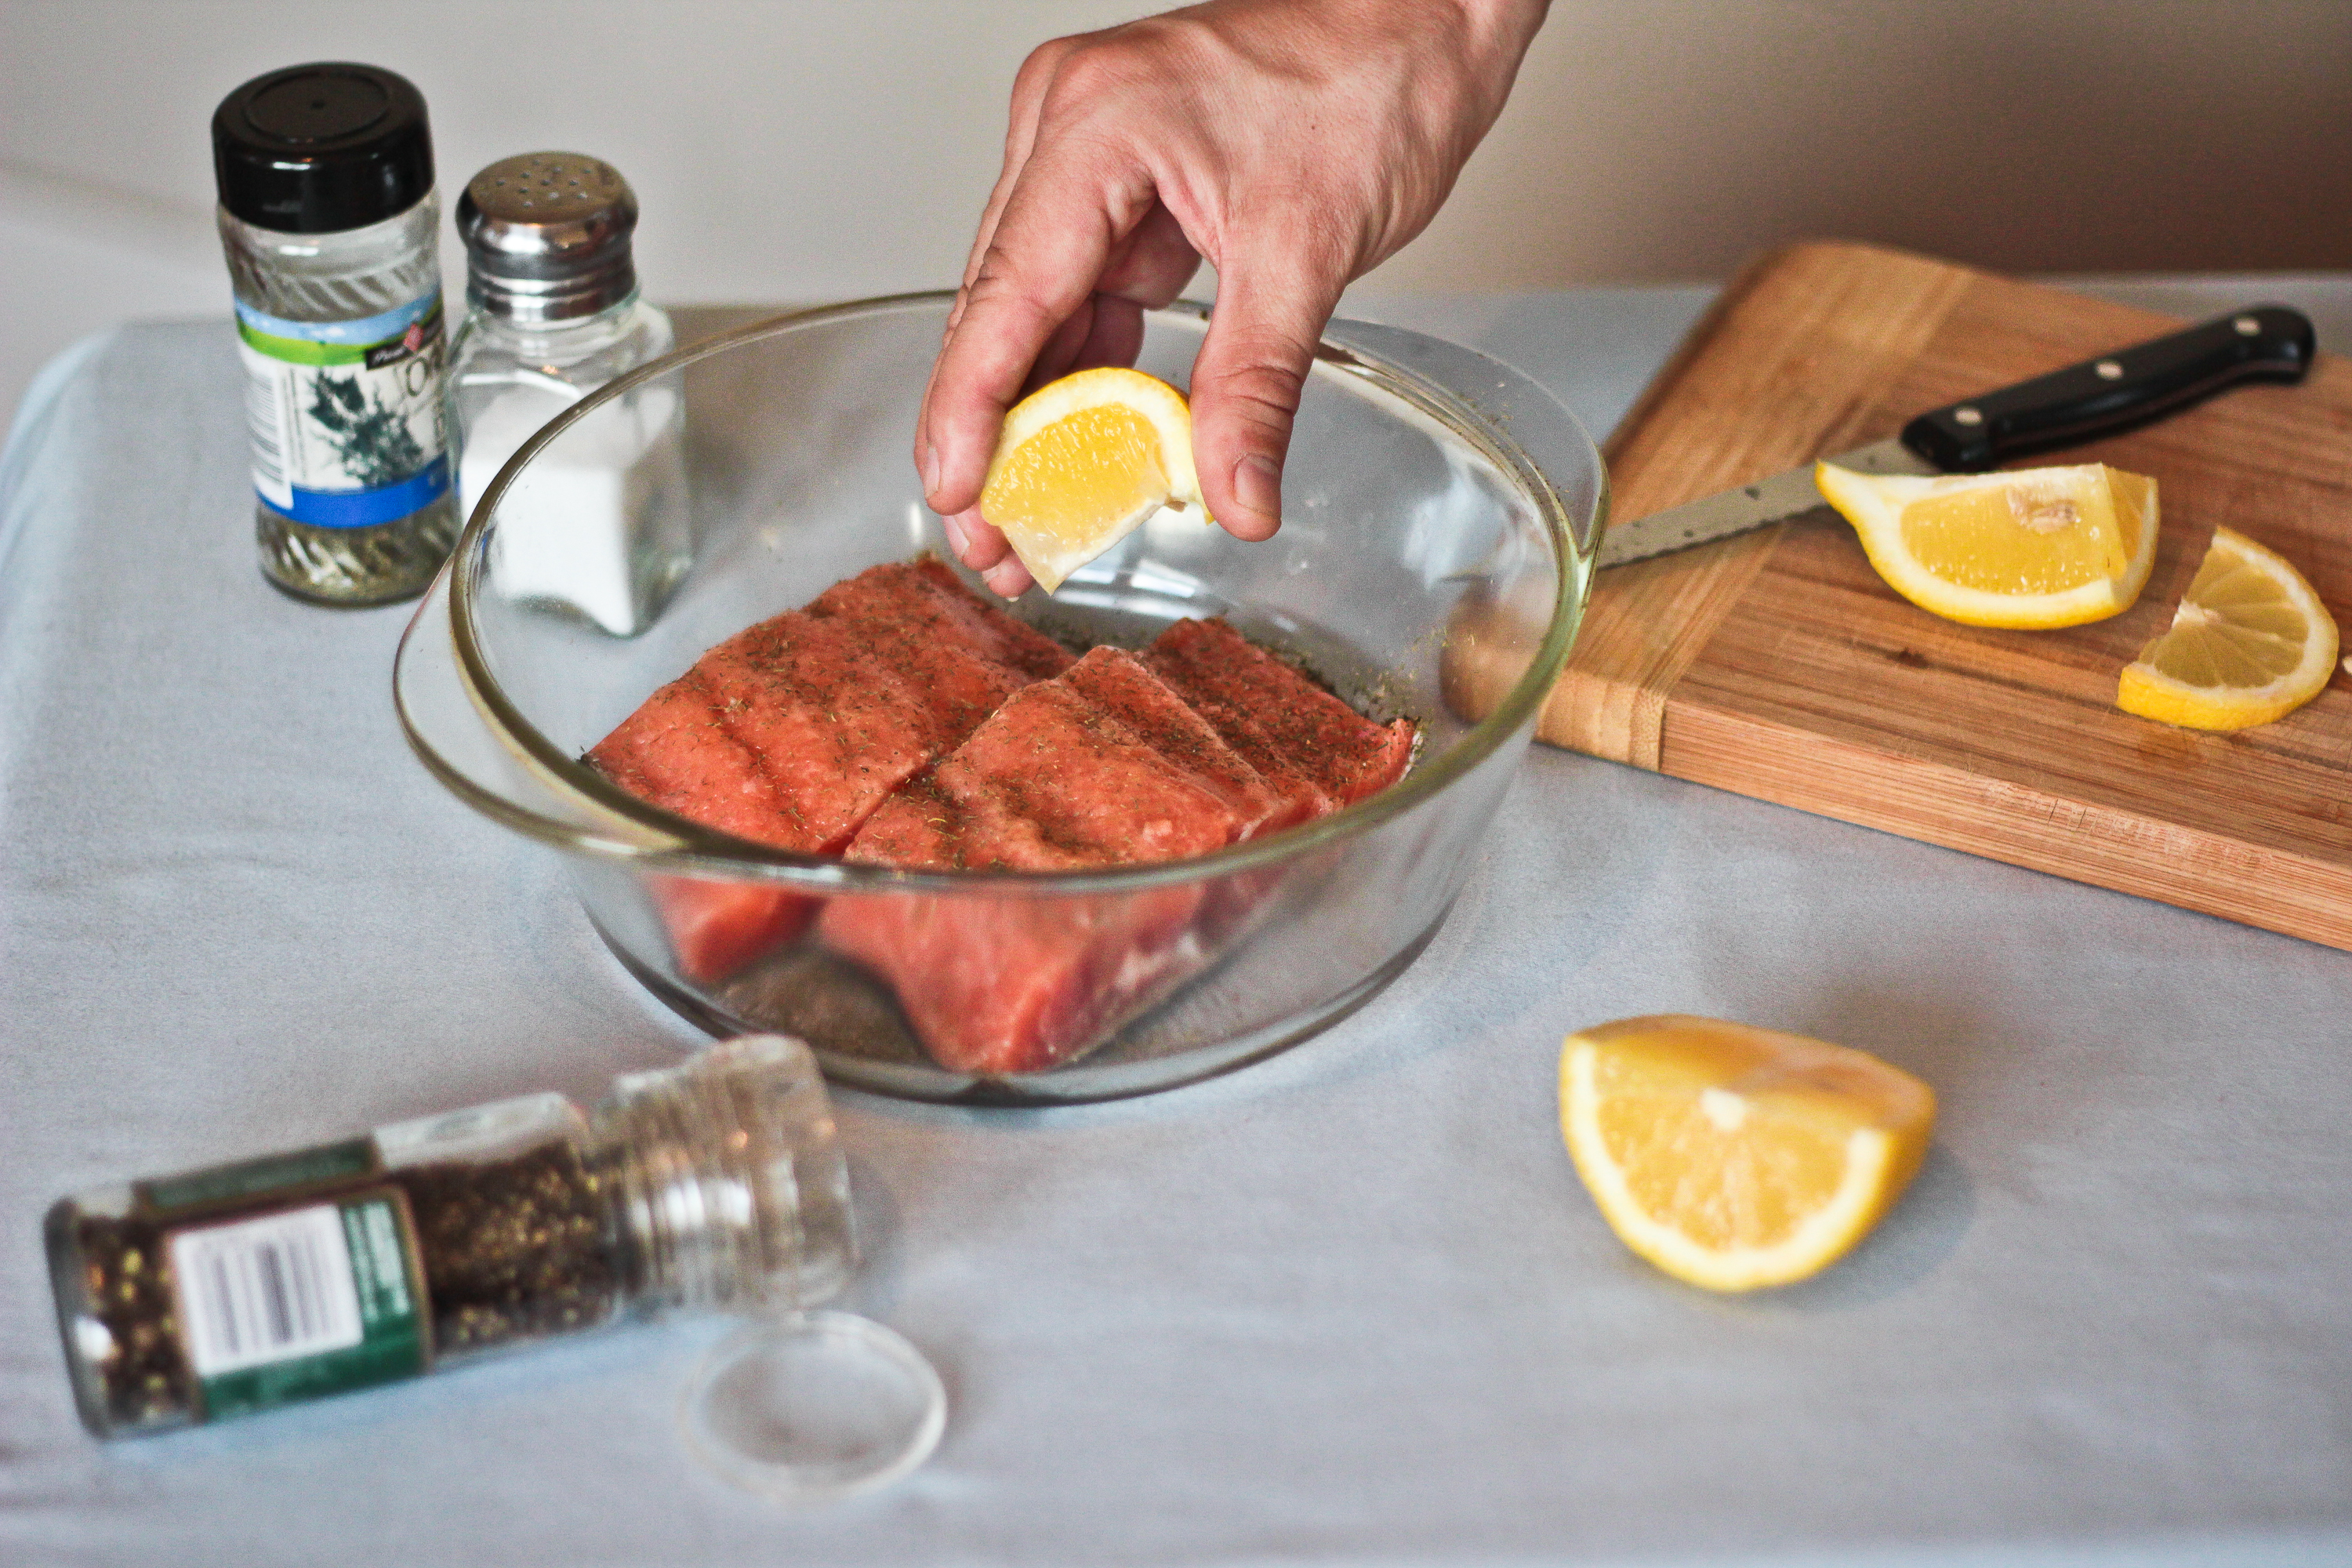 how to cook frozen salmon without thawing in the oven livestrong com. Black Bedroom Furniture Sets. Home Design Ideas